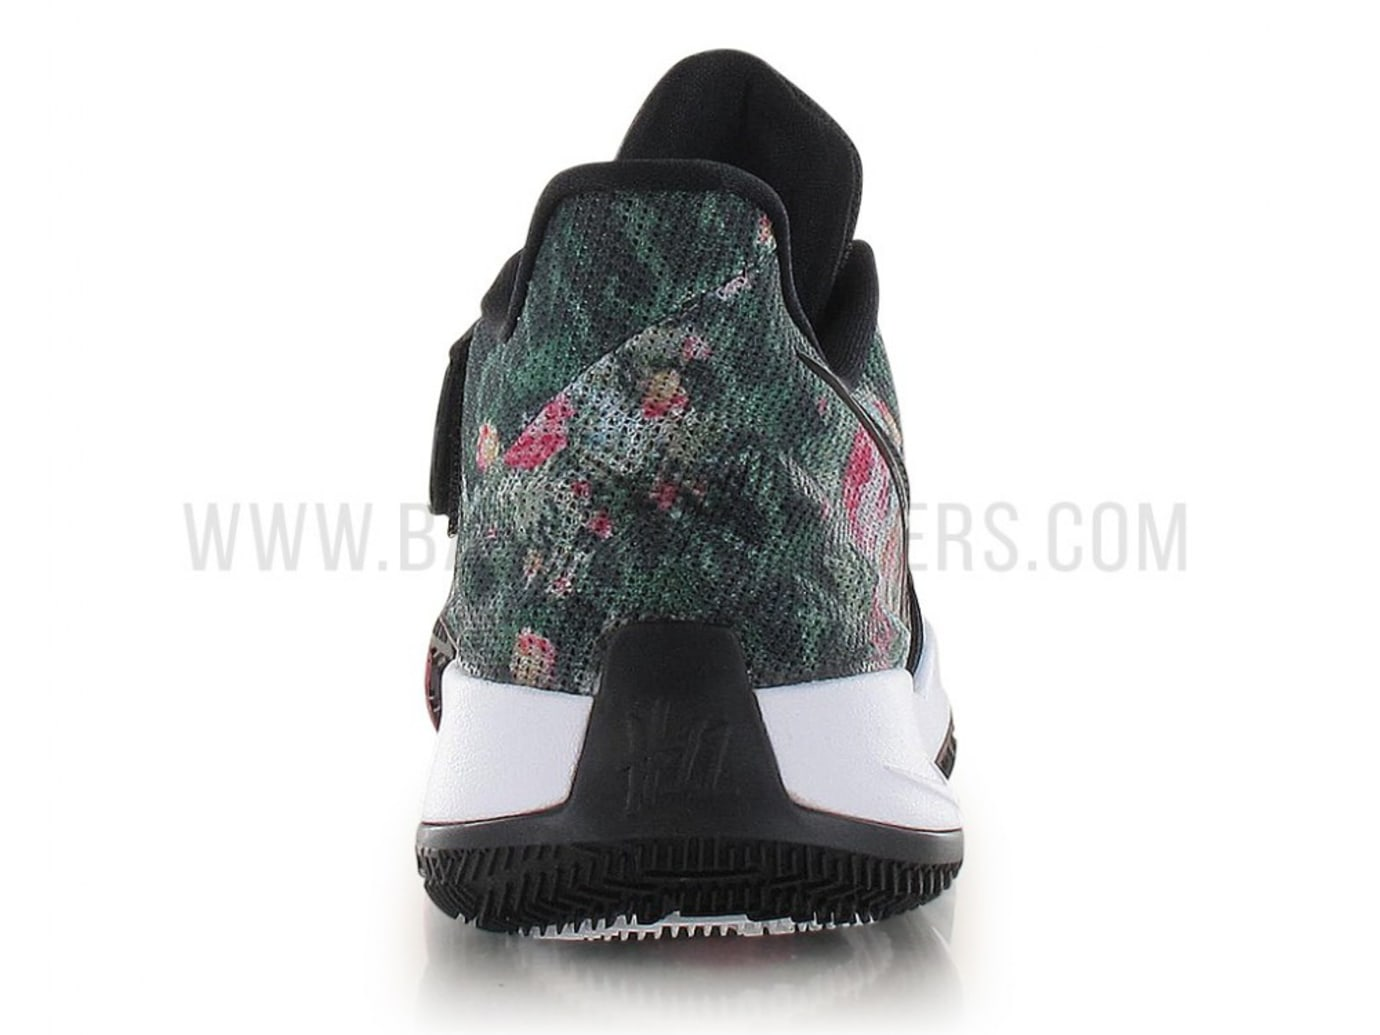 Nike Kyrie Low 'Floral' AO8979002 Release Date